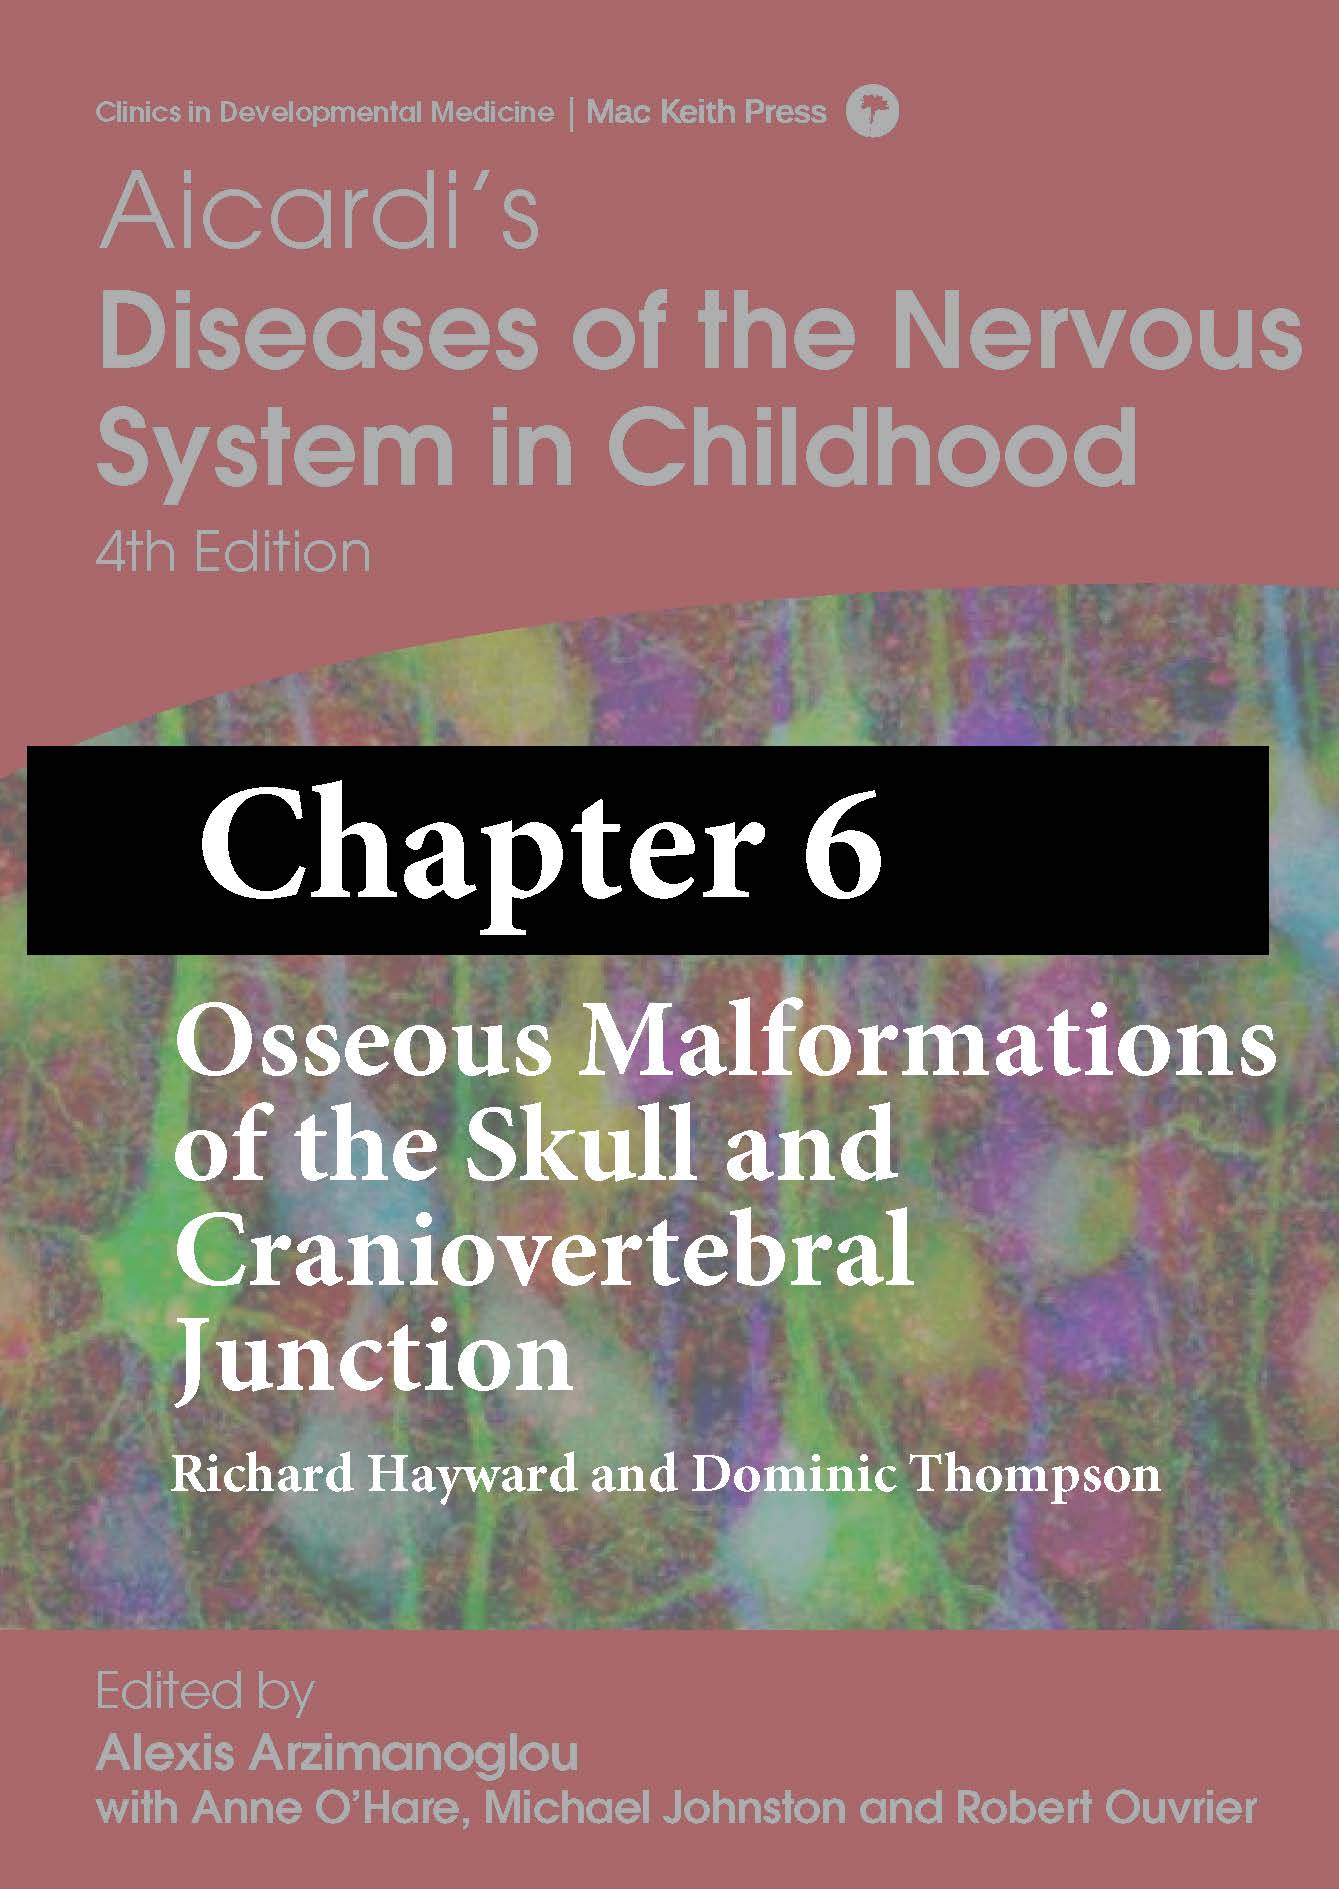 Aicardi Chapter 6 - Osseous Malformations of the Skull and Craniovertebral Junction